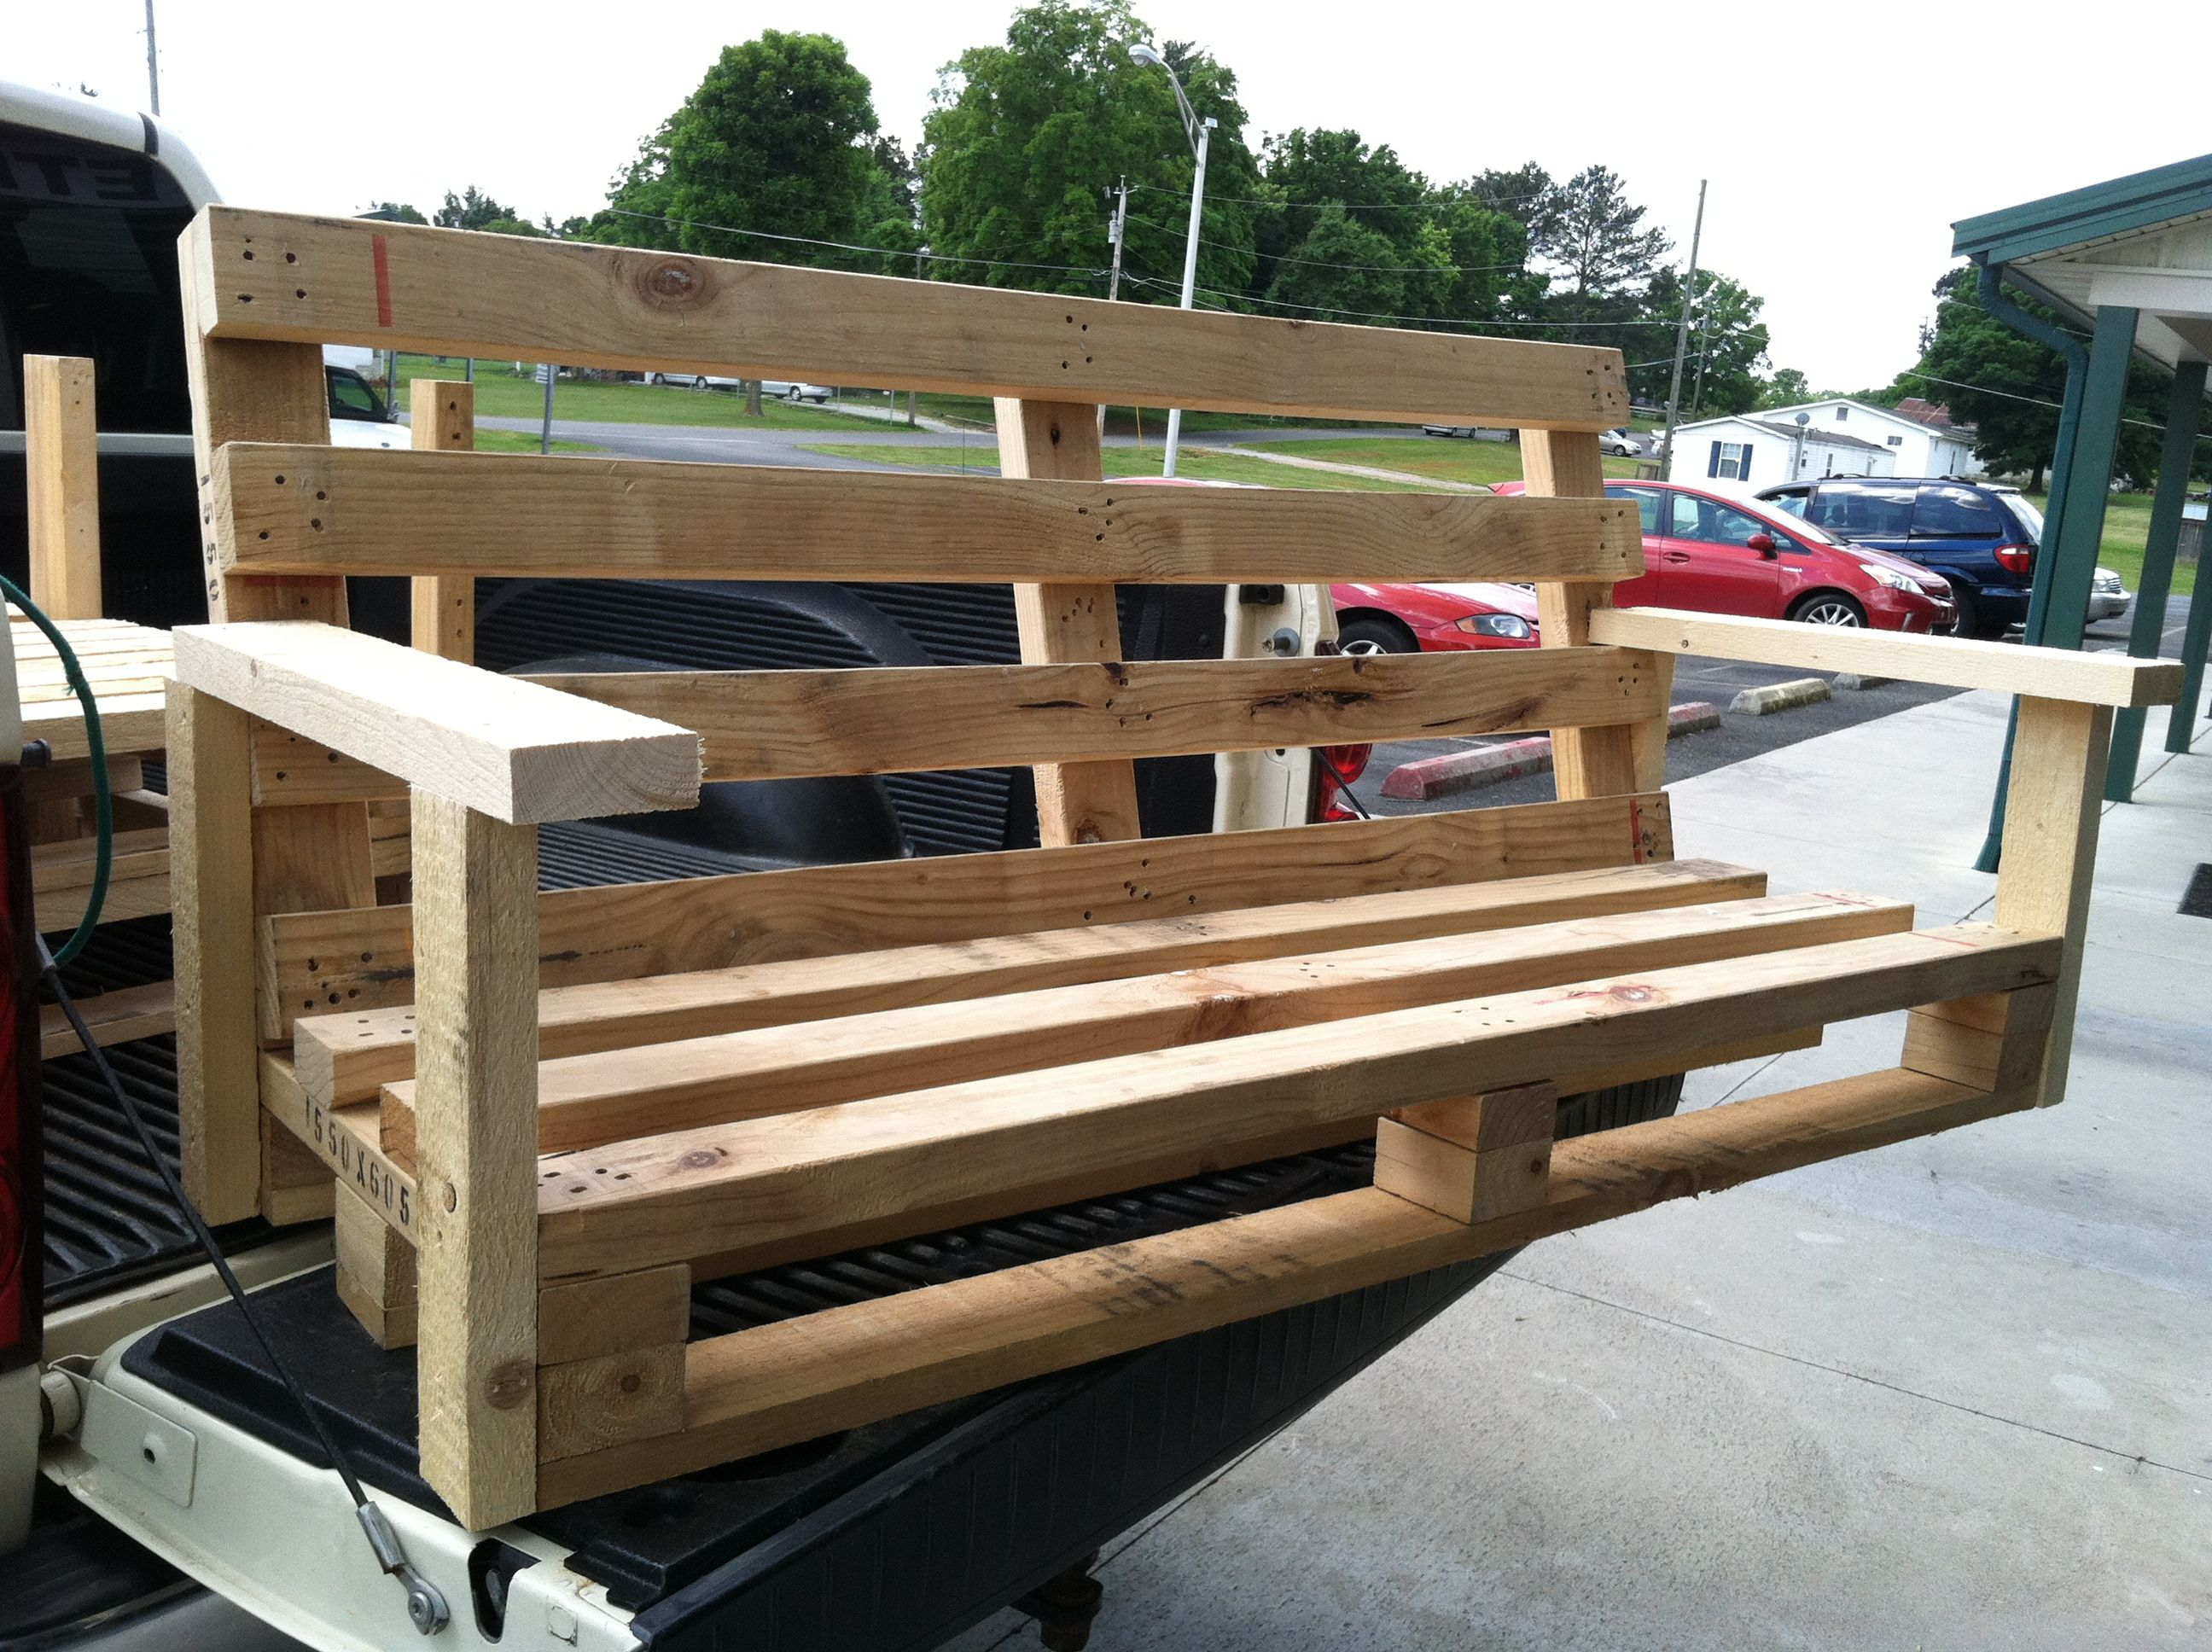 Pallet Porch Swing Yard Projects Pinterest Swings Porches And Porch Swings